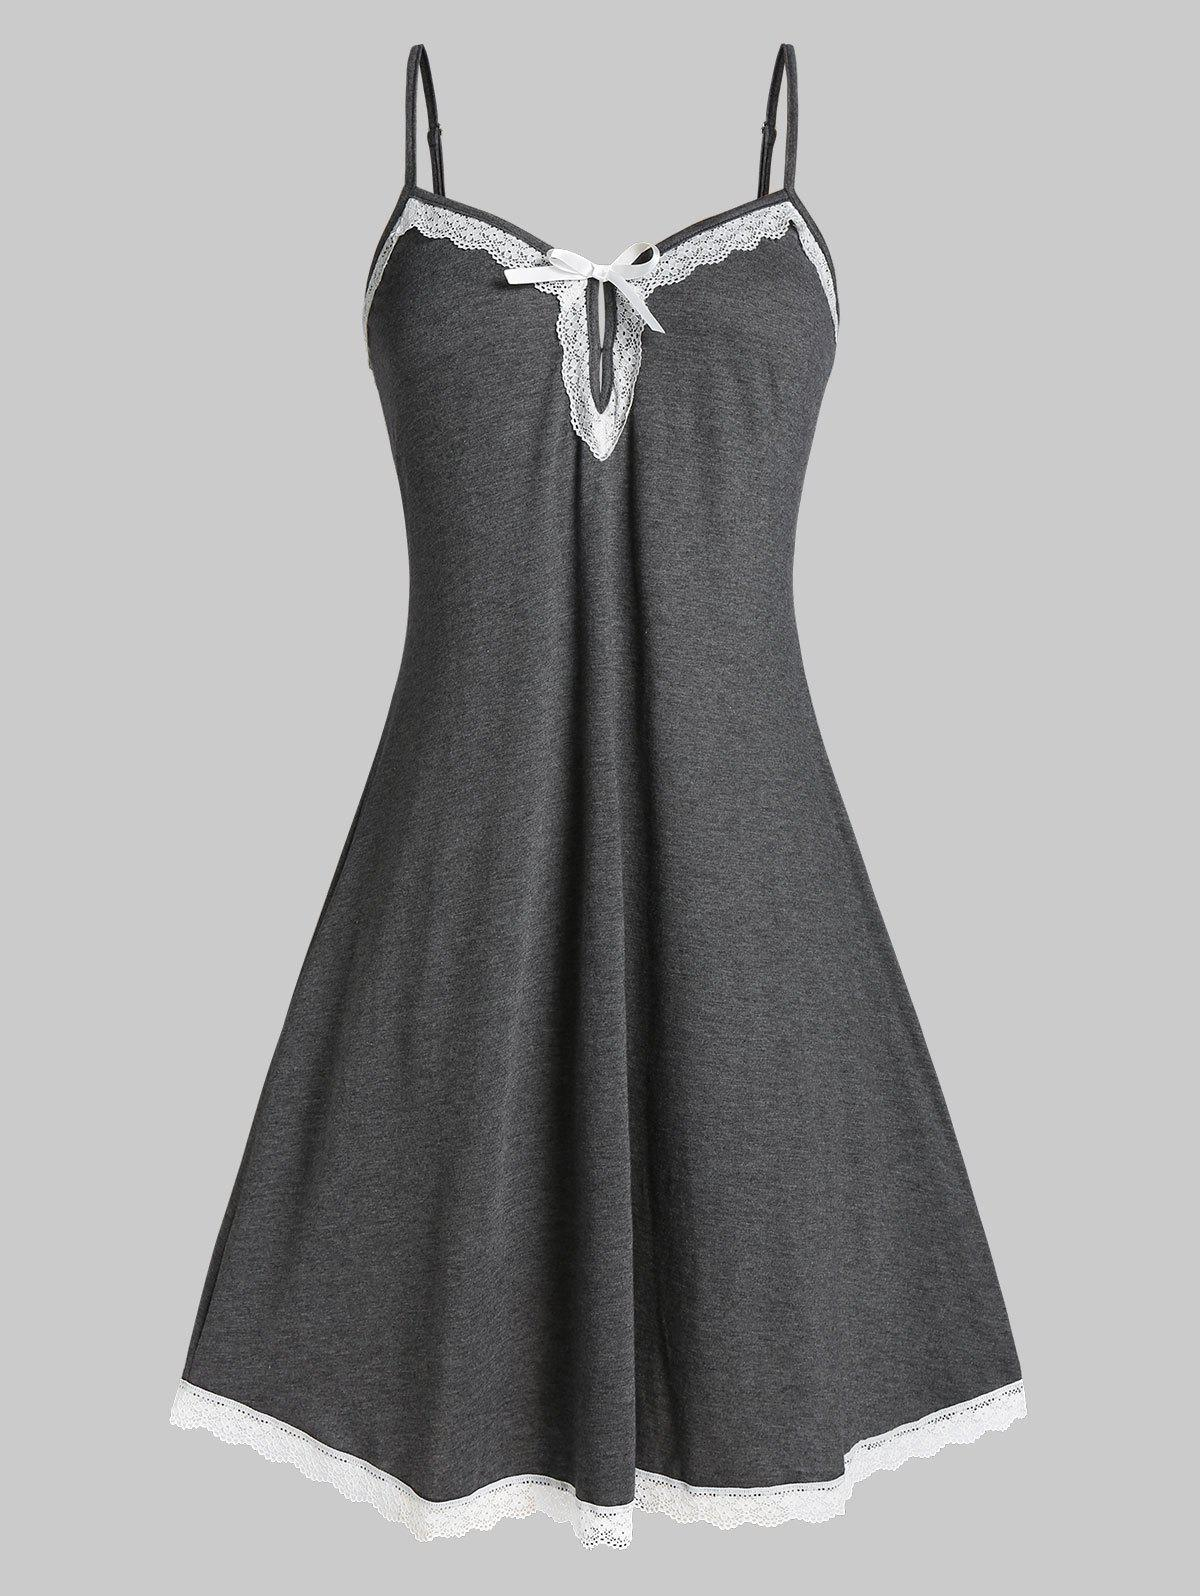 Plus Size Lace Insert Sleepwear Dress - CARBON GRAY 3X